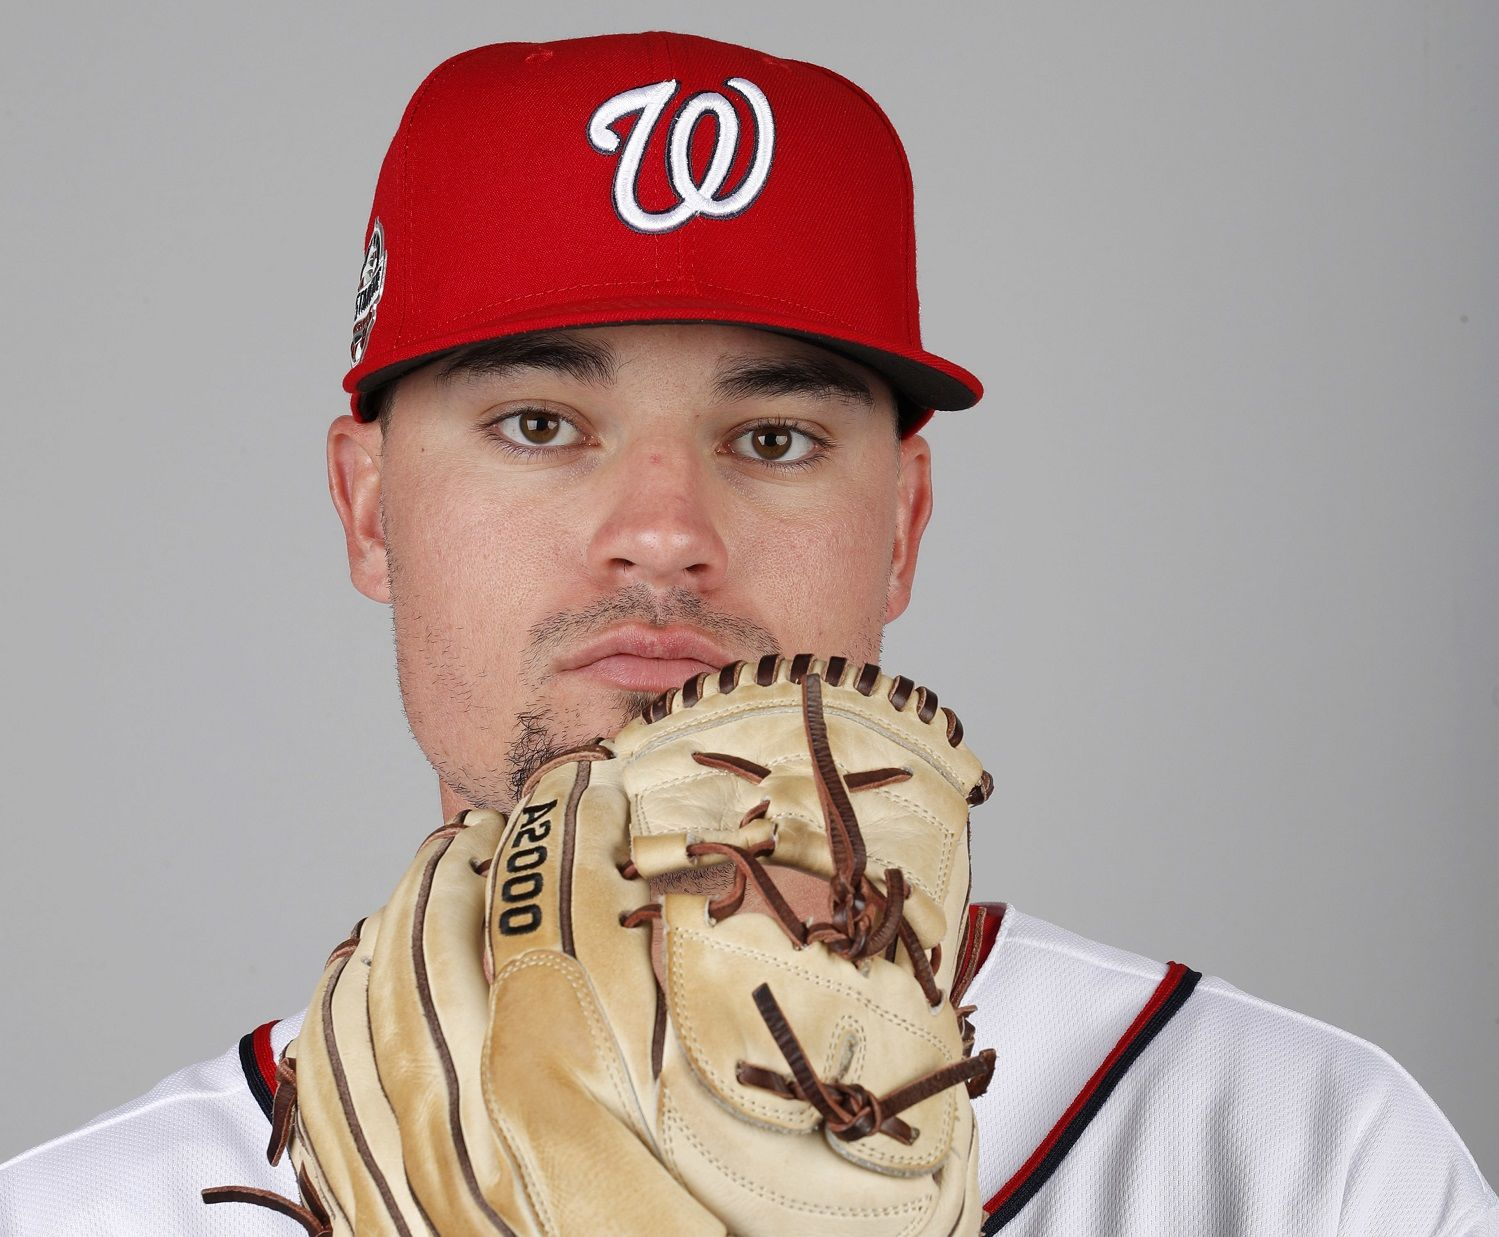 This is a 2018 photo of Koda Glover of the Washington Nationals baseball team. This image reflects the Nationals active roster as of Feb. 22, 2018 when this image was taken. (AP Photo/Jeff Roberson)